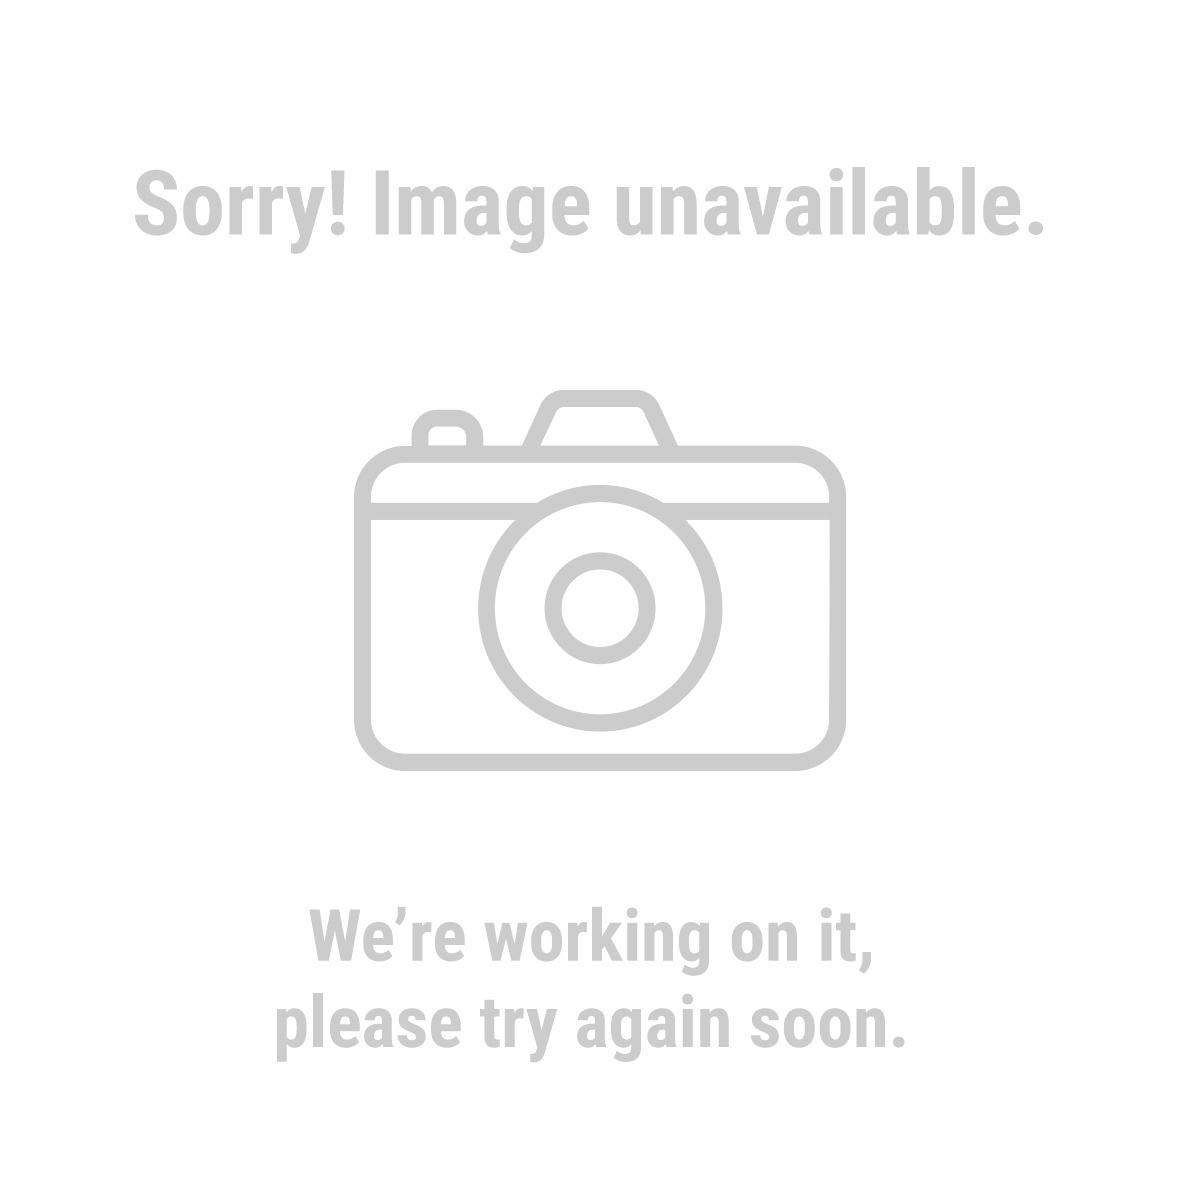 Warrior® 61545 3/16 in. Titanium Nitride Coated High Speed Steel Drill Bits, 7 Piece